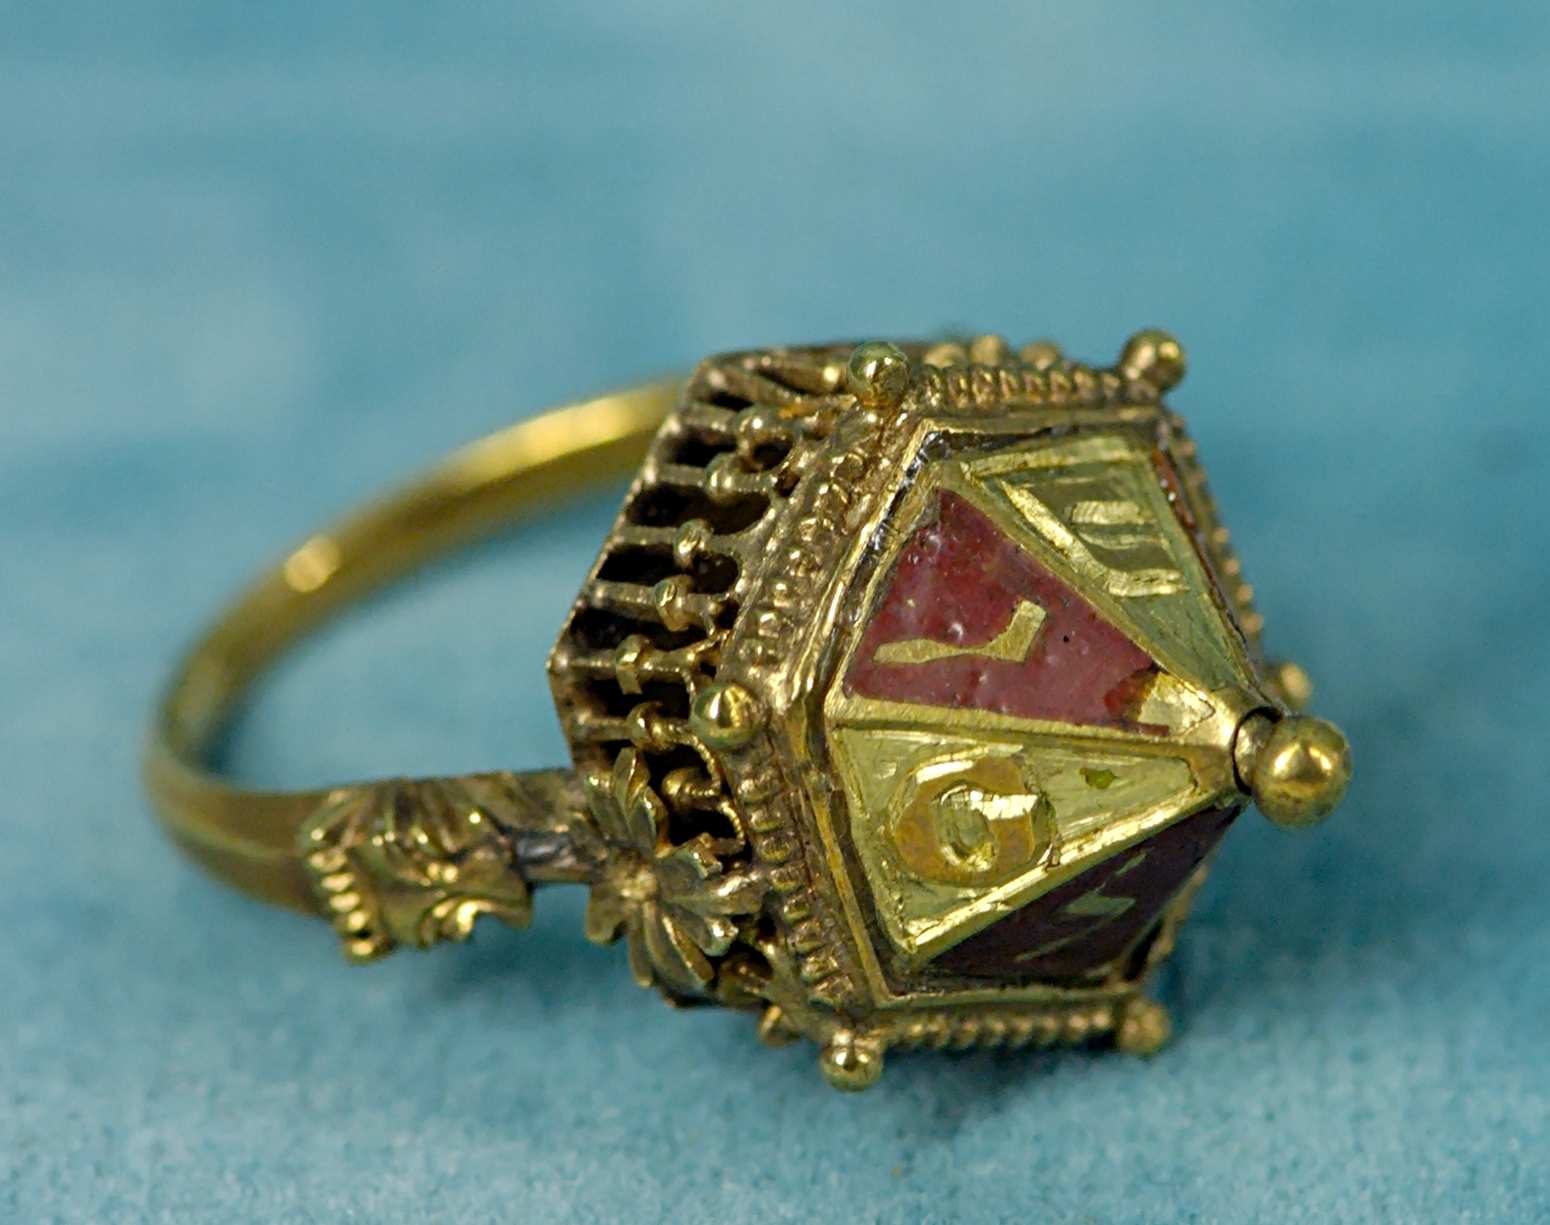 FileJewish wedding ring MNMA Cl20658jpg Wikimedia Commons